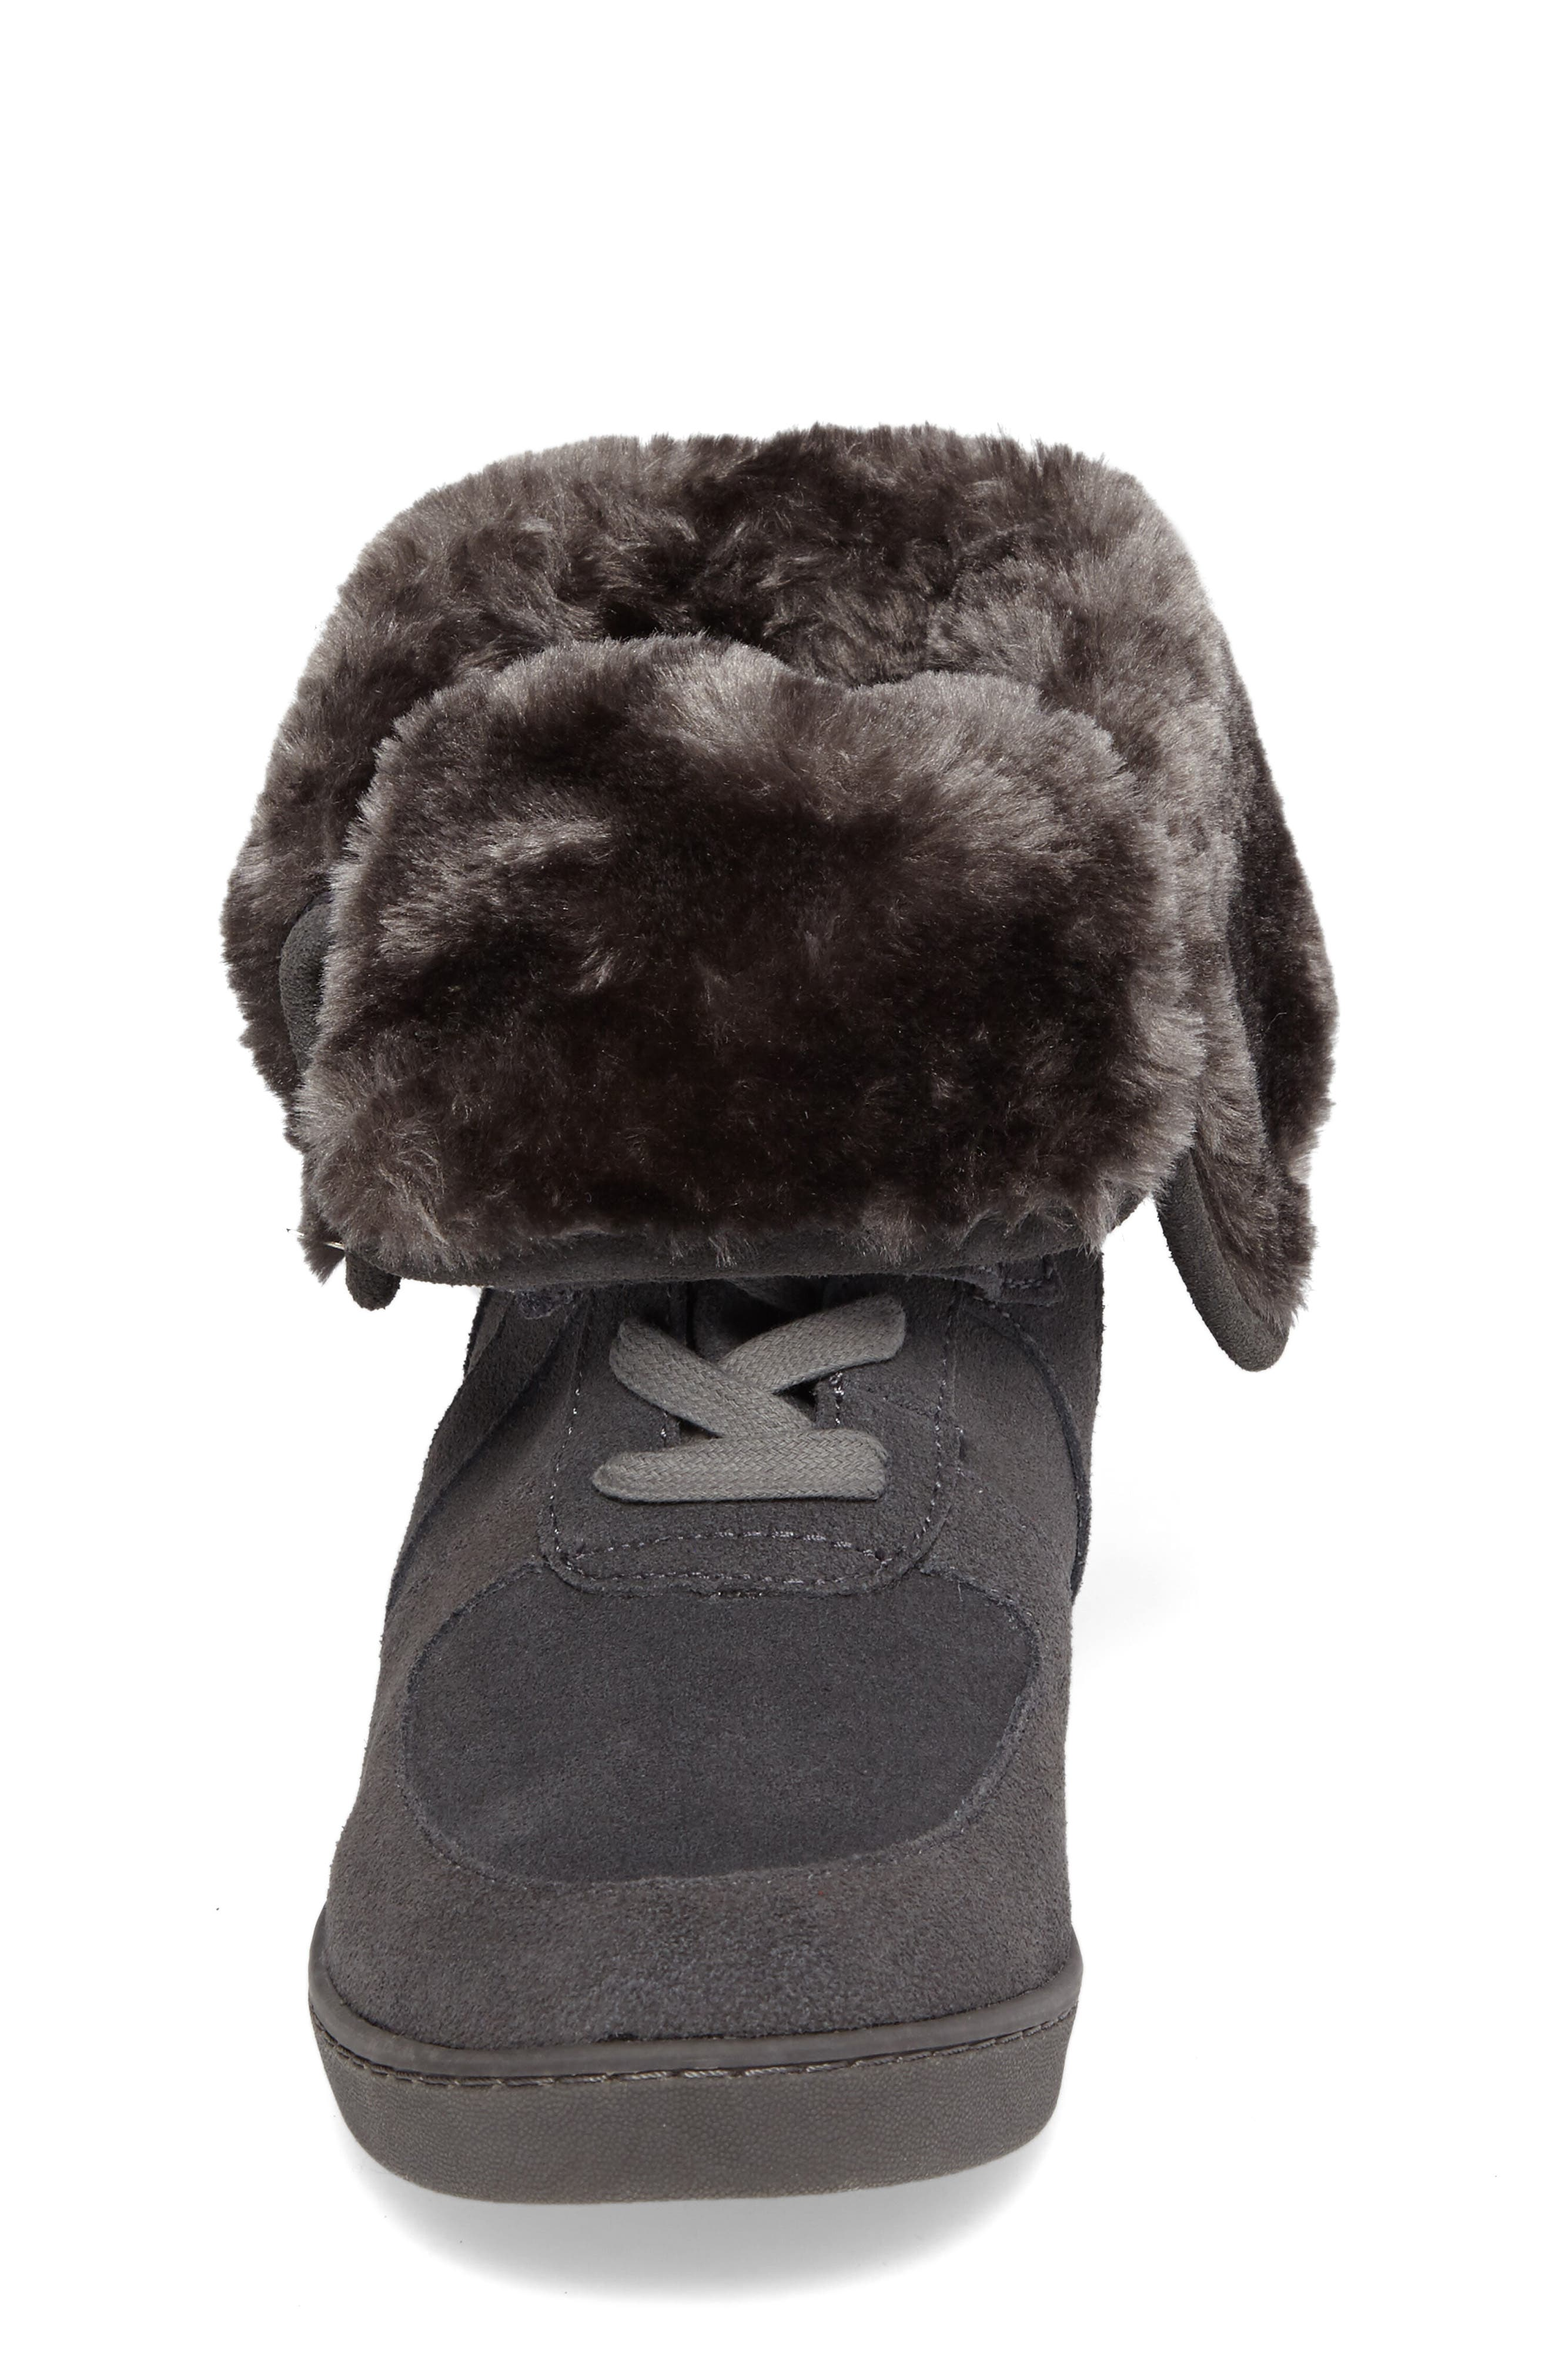 Boogie Beaver Faux Fur Cuffed Bootie,                             Alternate thumbnail 4, color,                             052